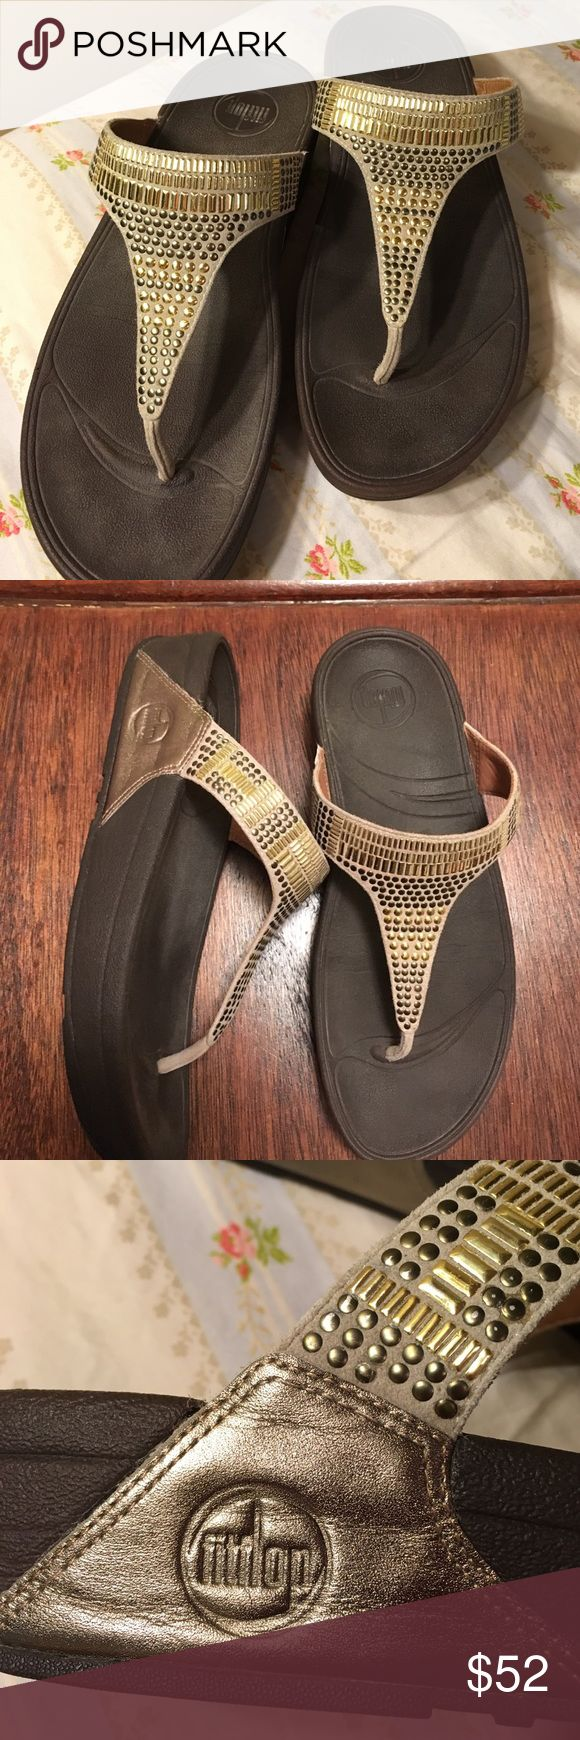 Aztek Chada Thong Fitflop Sandal Metallic bronze The sandals are in excellent condition worn twice.  From a non-smoking household with a rubber sole heel measures approximately 1.5 inches. Leather Thong  features metallic stud covered strap and traction sole. Fitflop Shoes Sandals